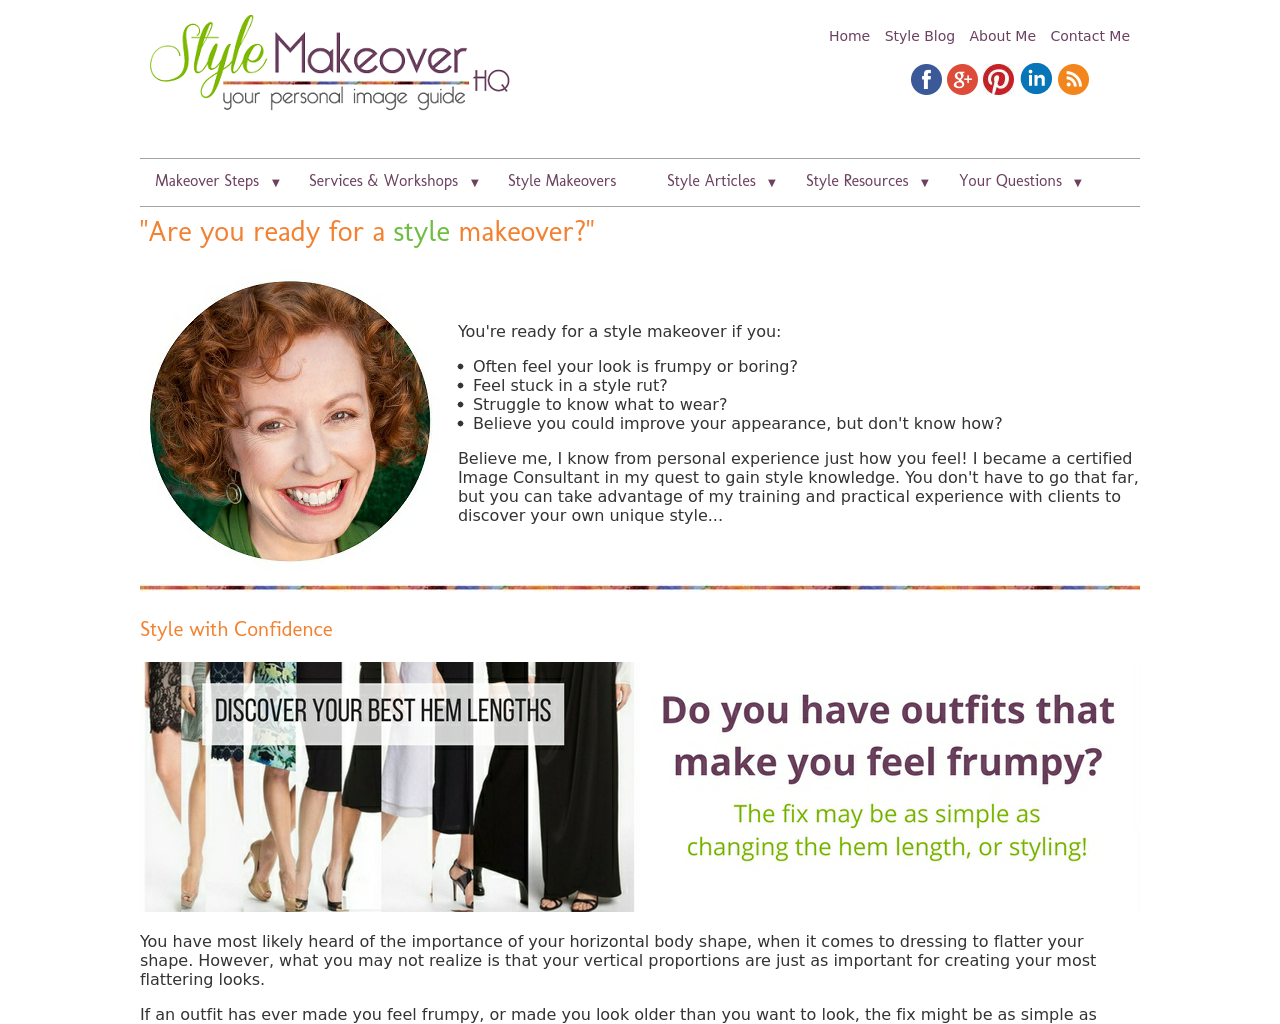 style-makeover-hq-Advertising-Reviews-Pricing